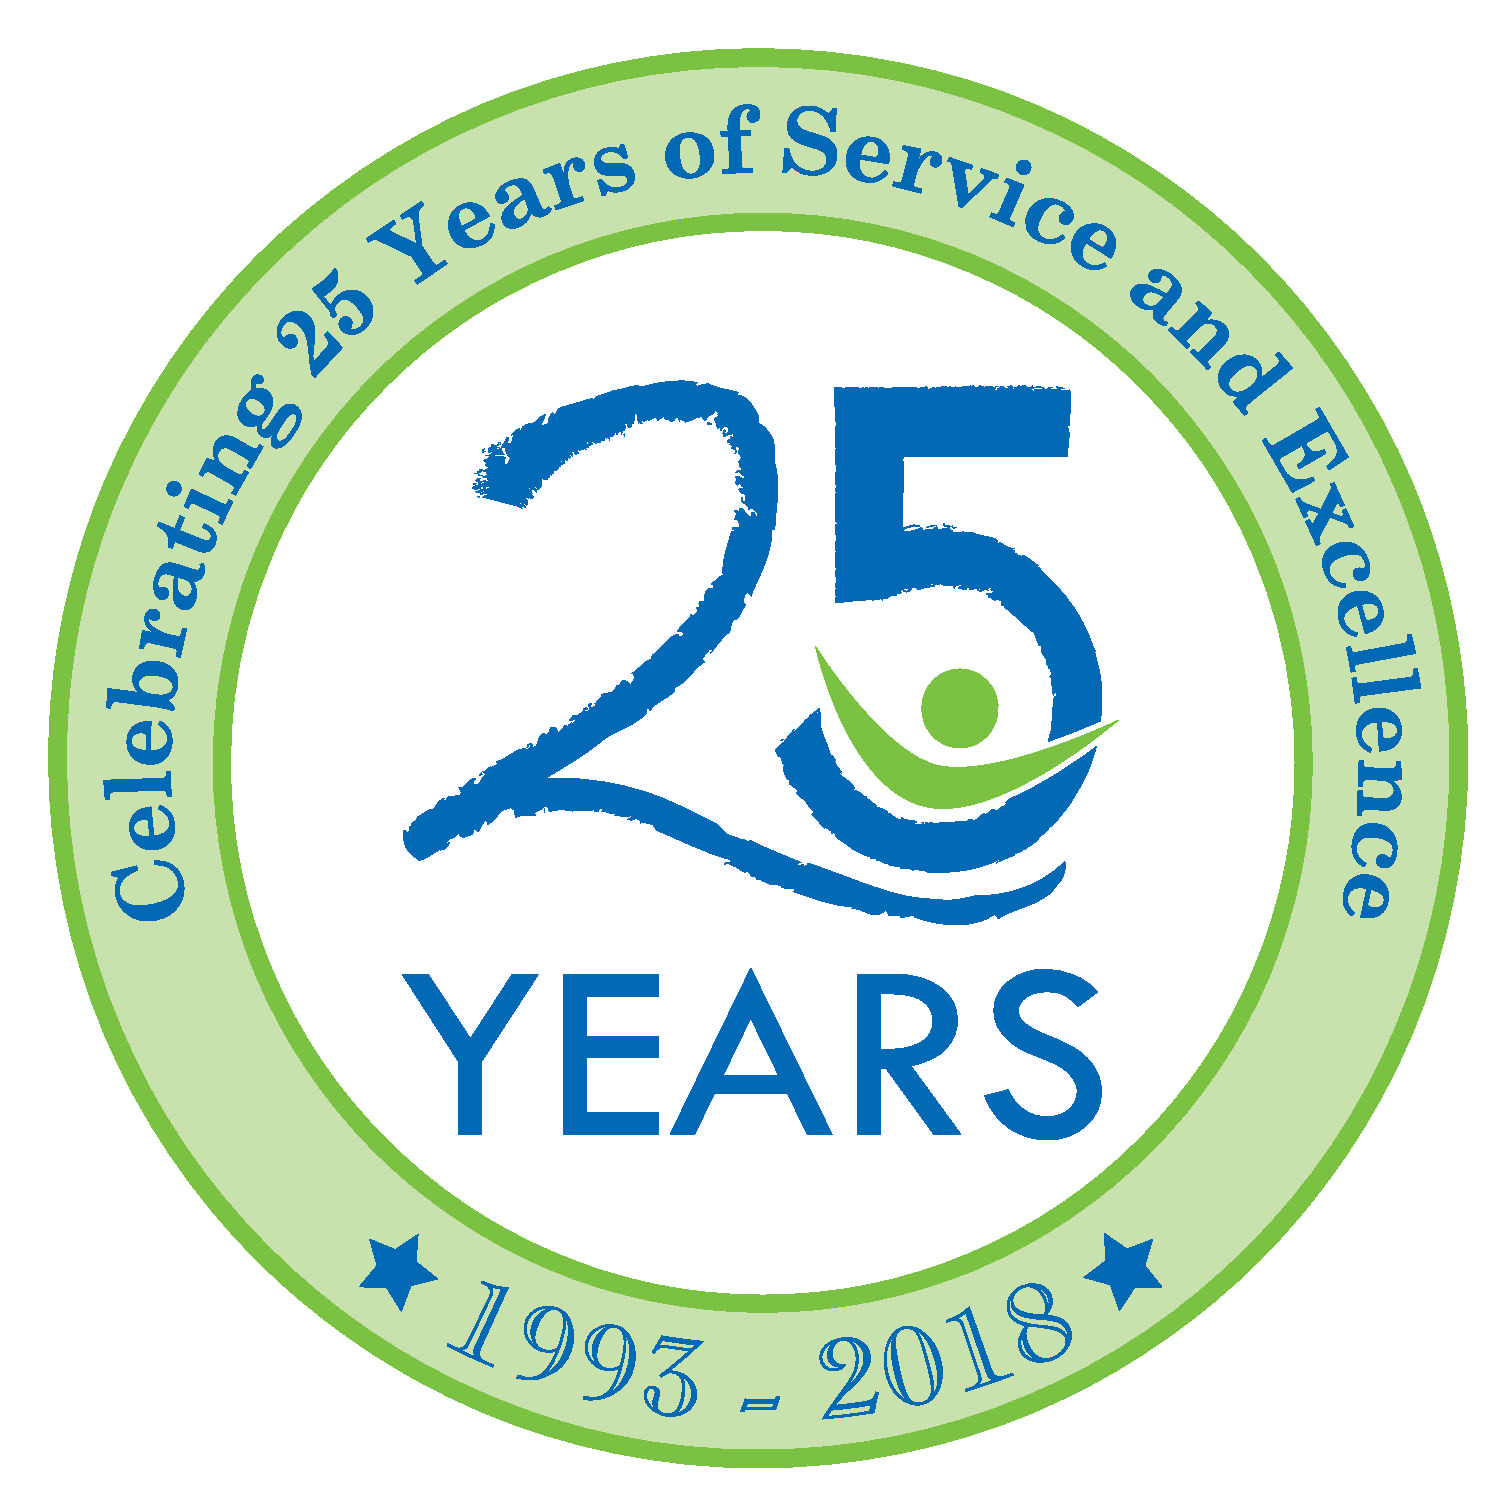 CRG Celebrating 25 Years